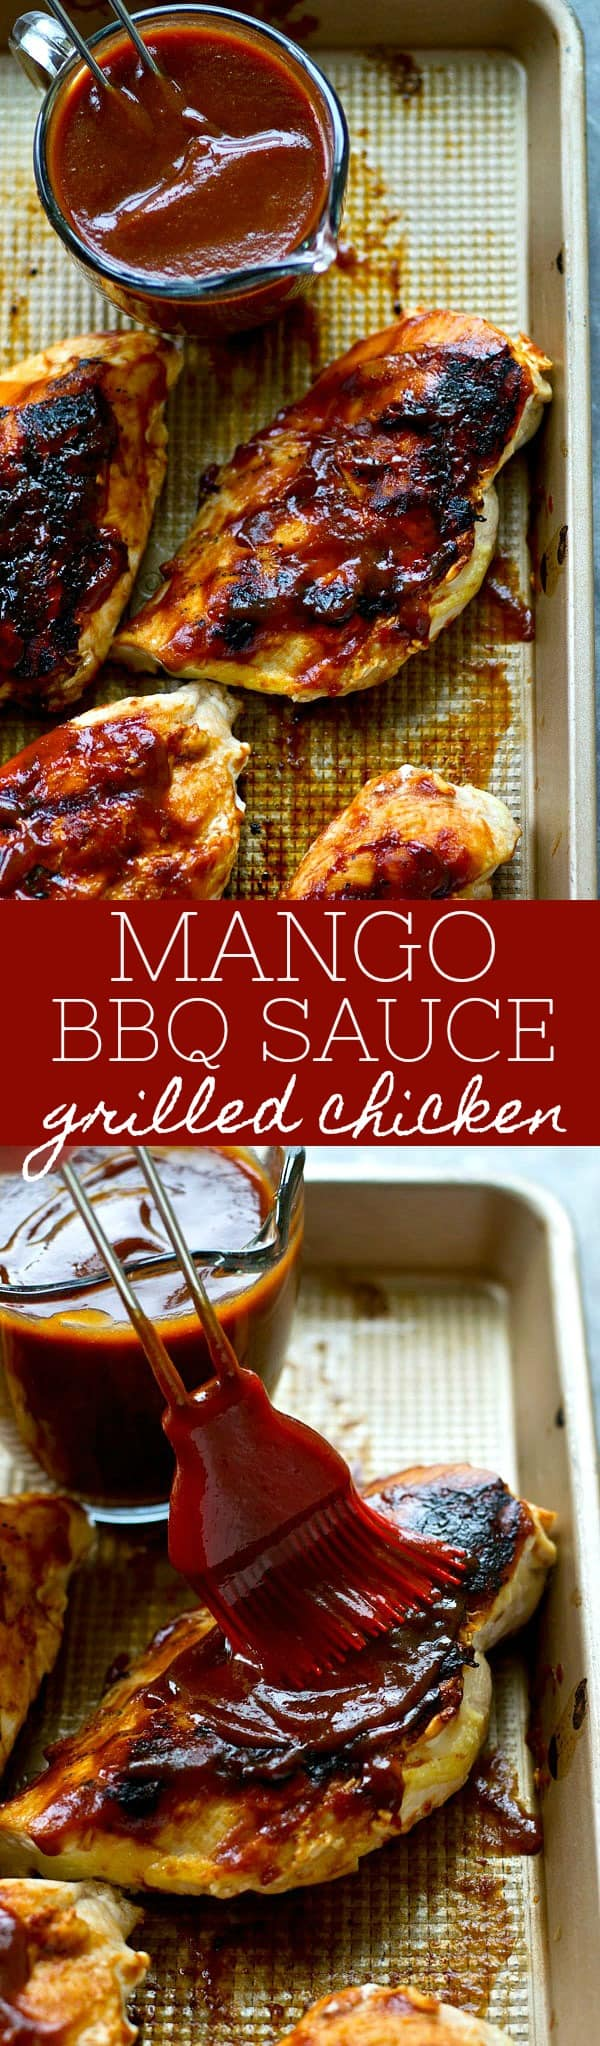 The most flavorful homemade BBQ sauce EVER collides with sweet mango and it all gets generously brushed over juicy grilled chicken.---Put this easy one on the summer dinner rotation!